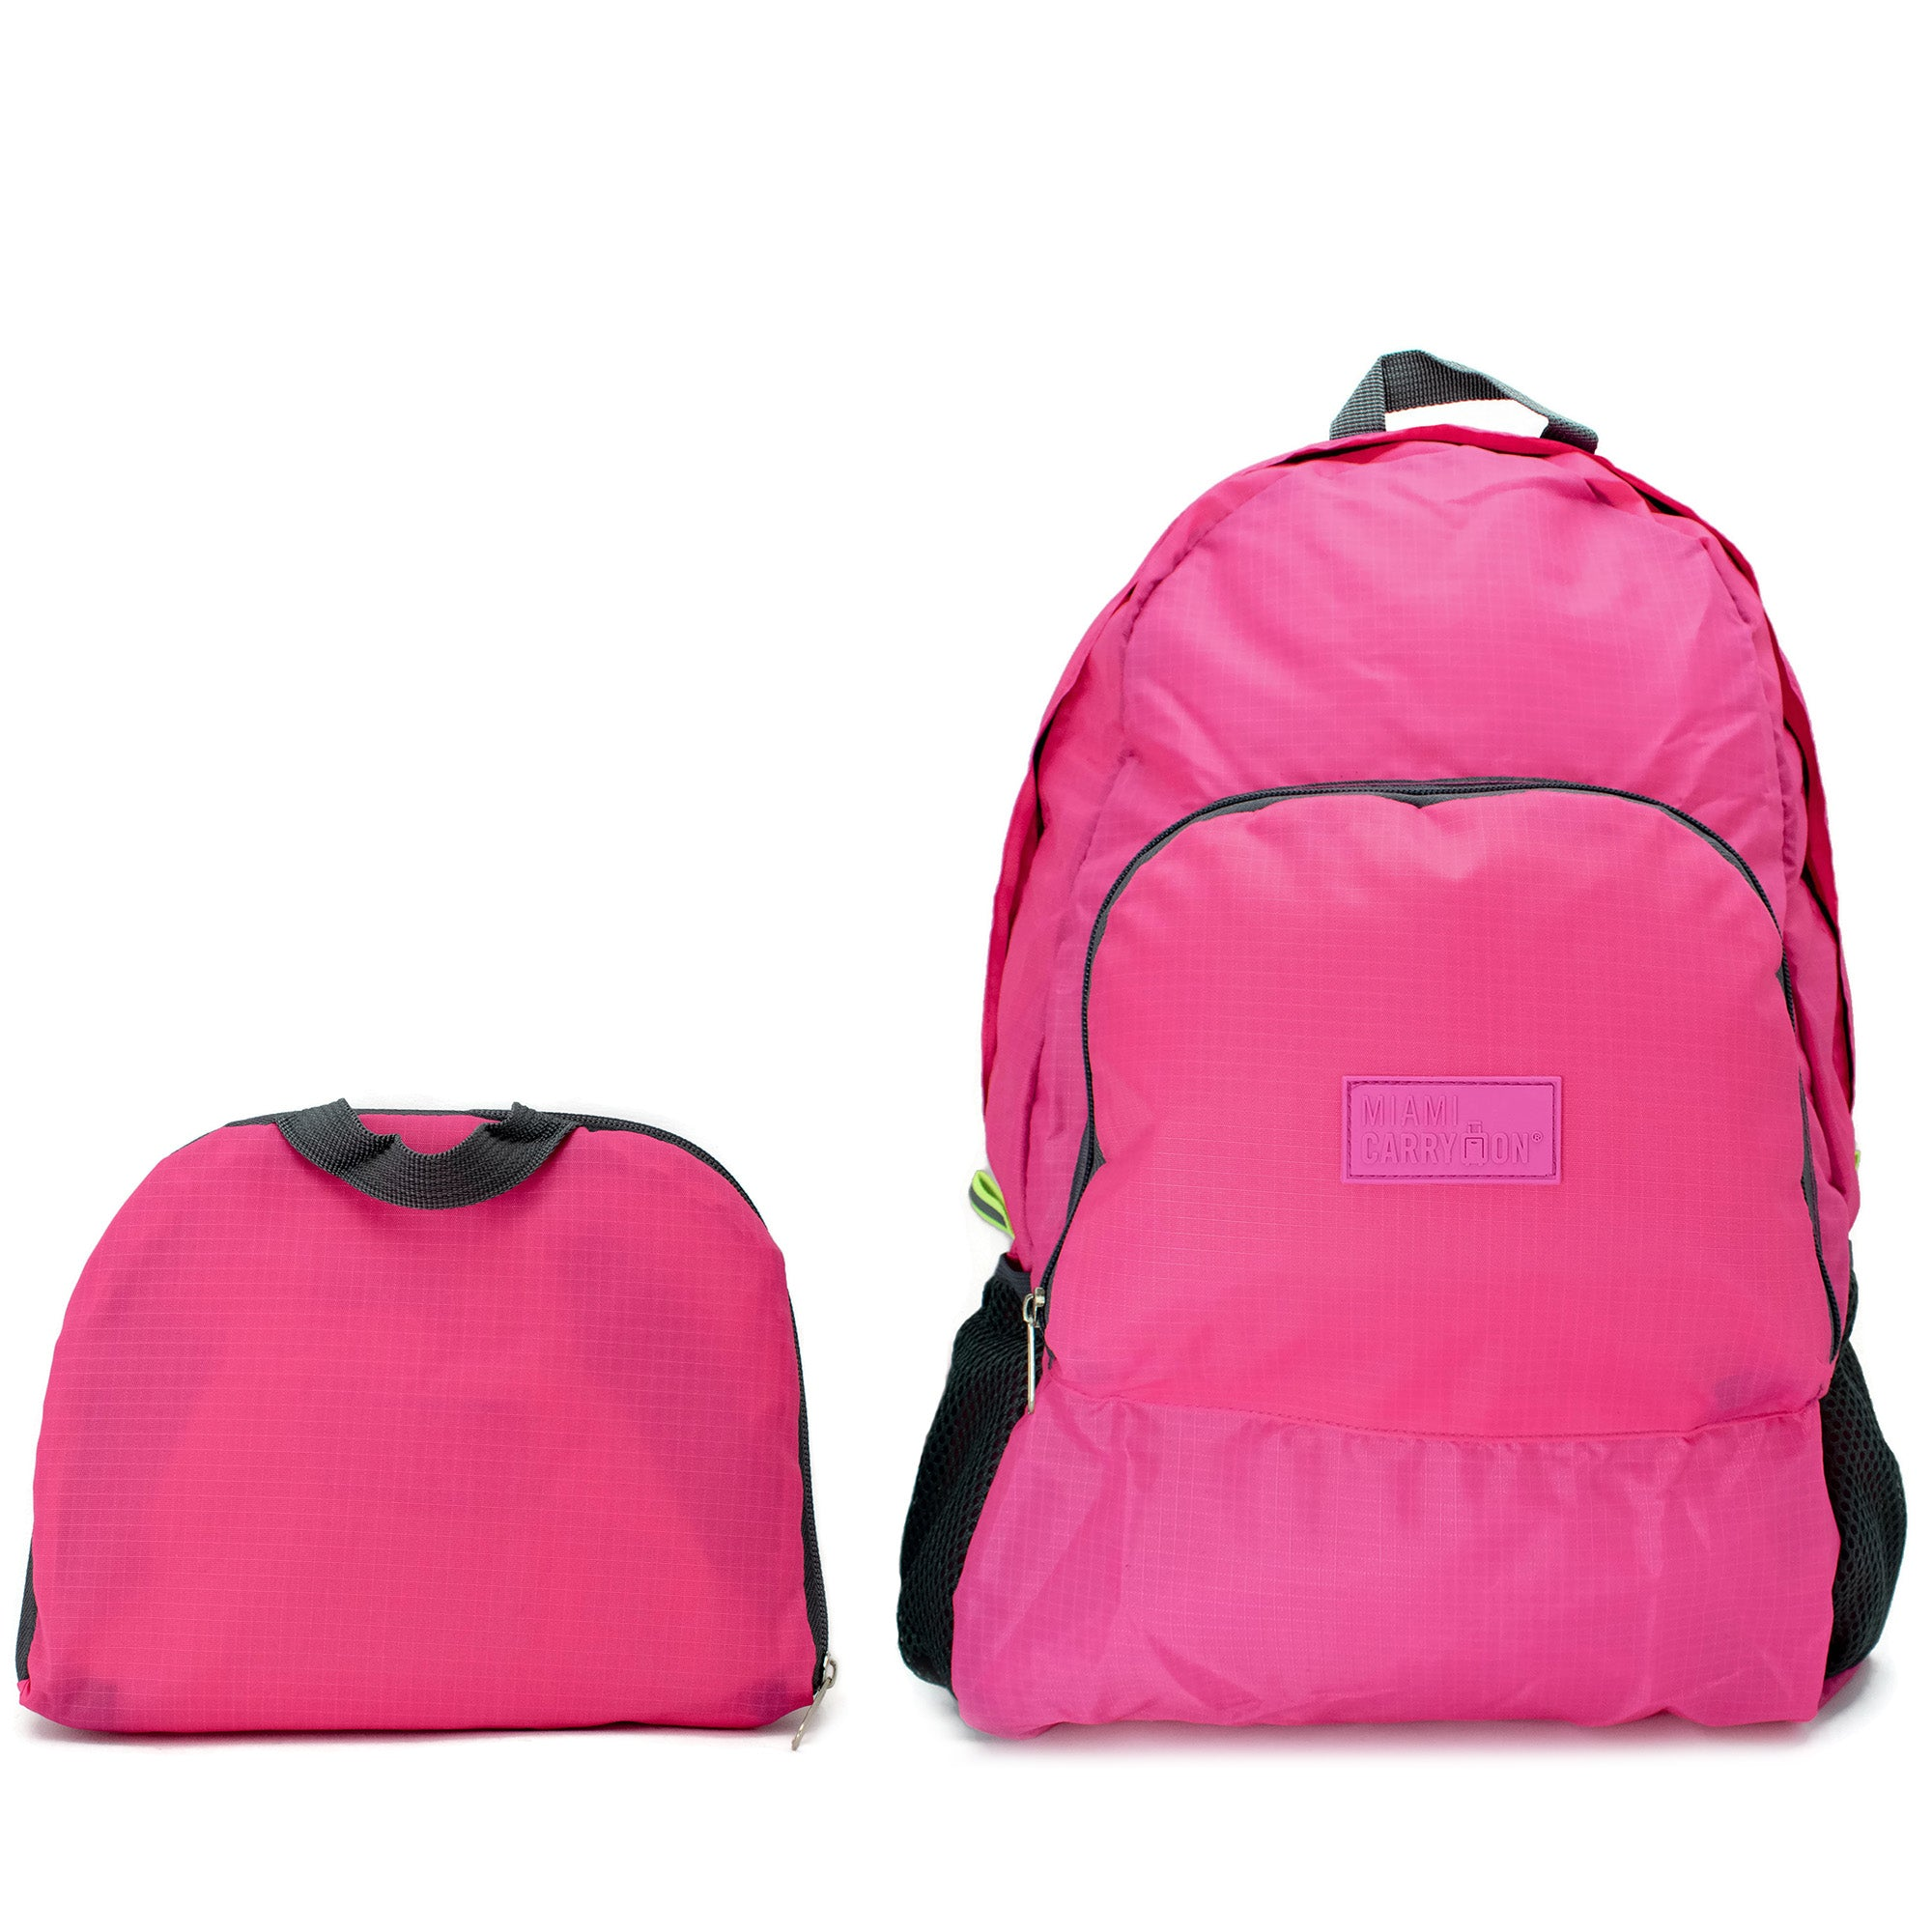 Water-resistant Foldable Backpack - Hot Pink - Travellty